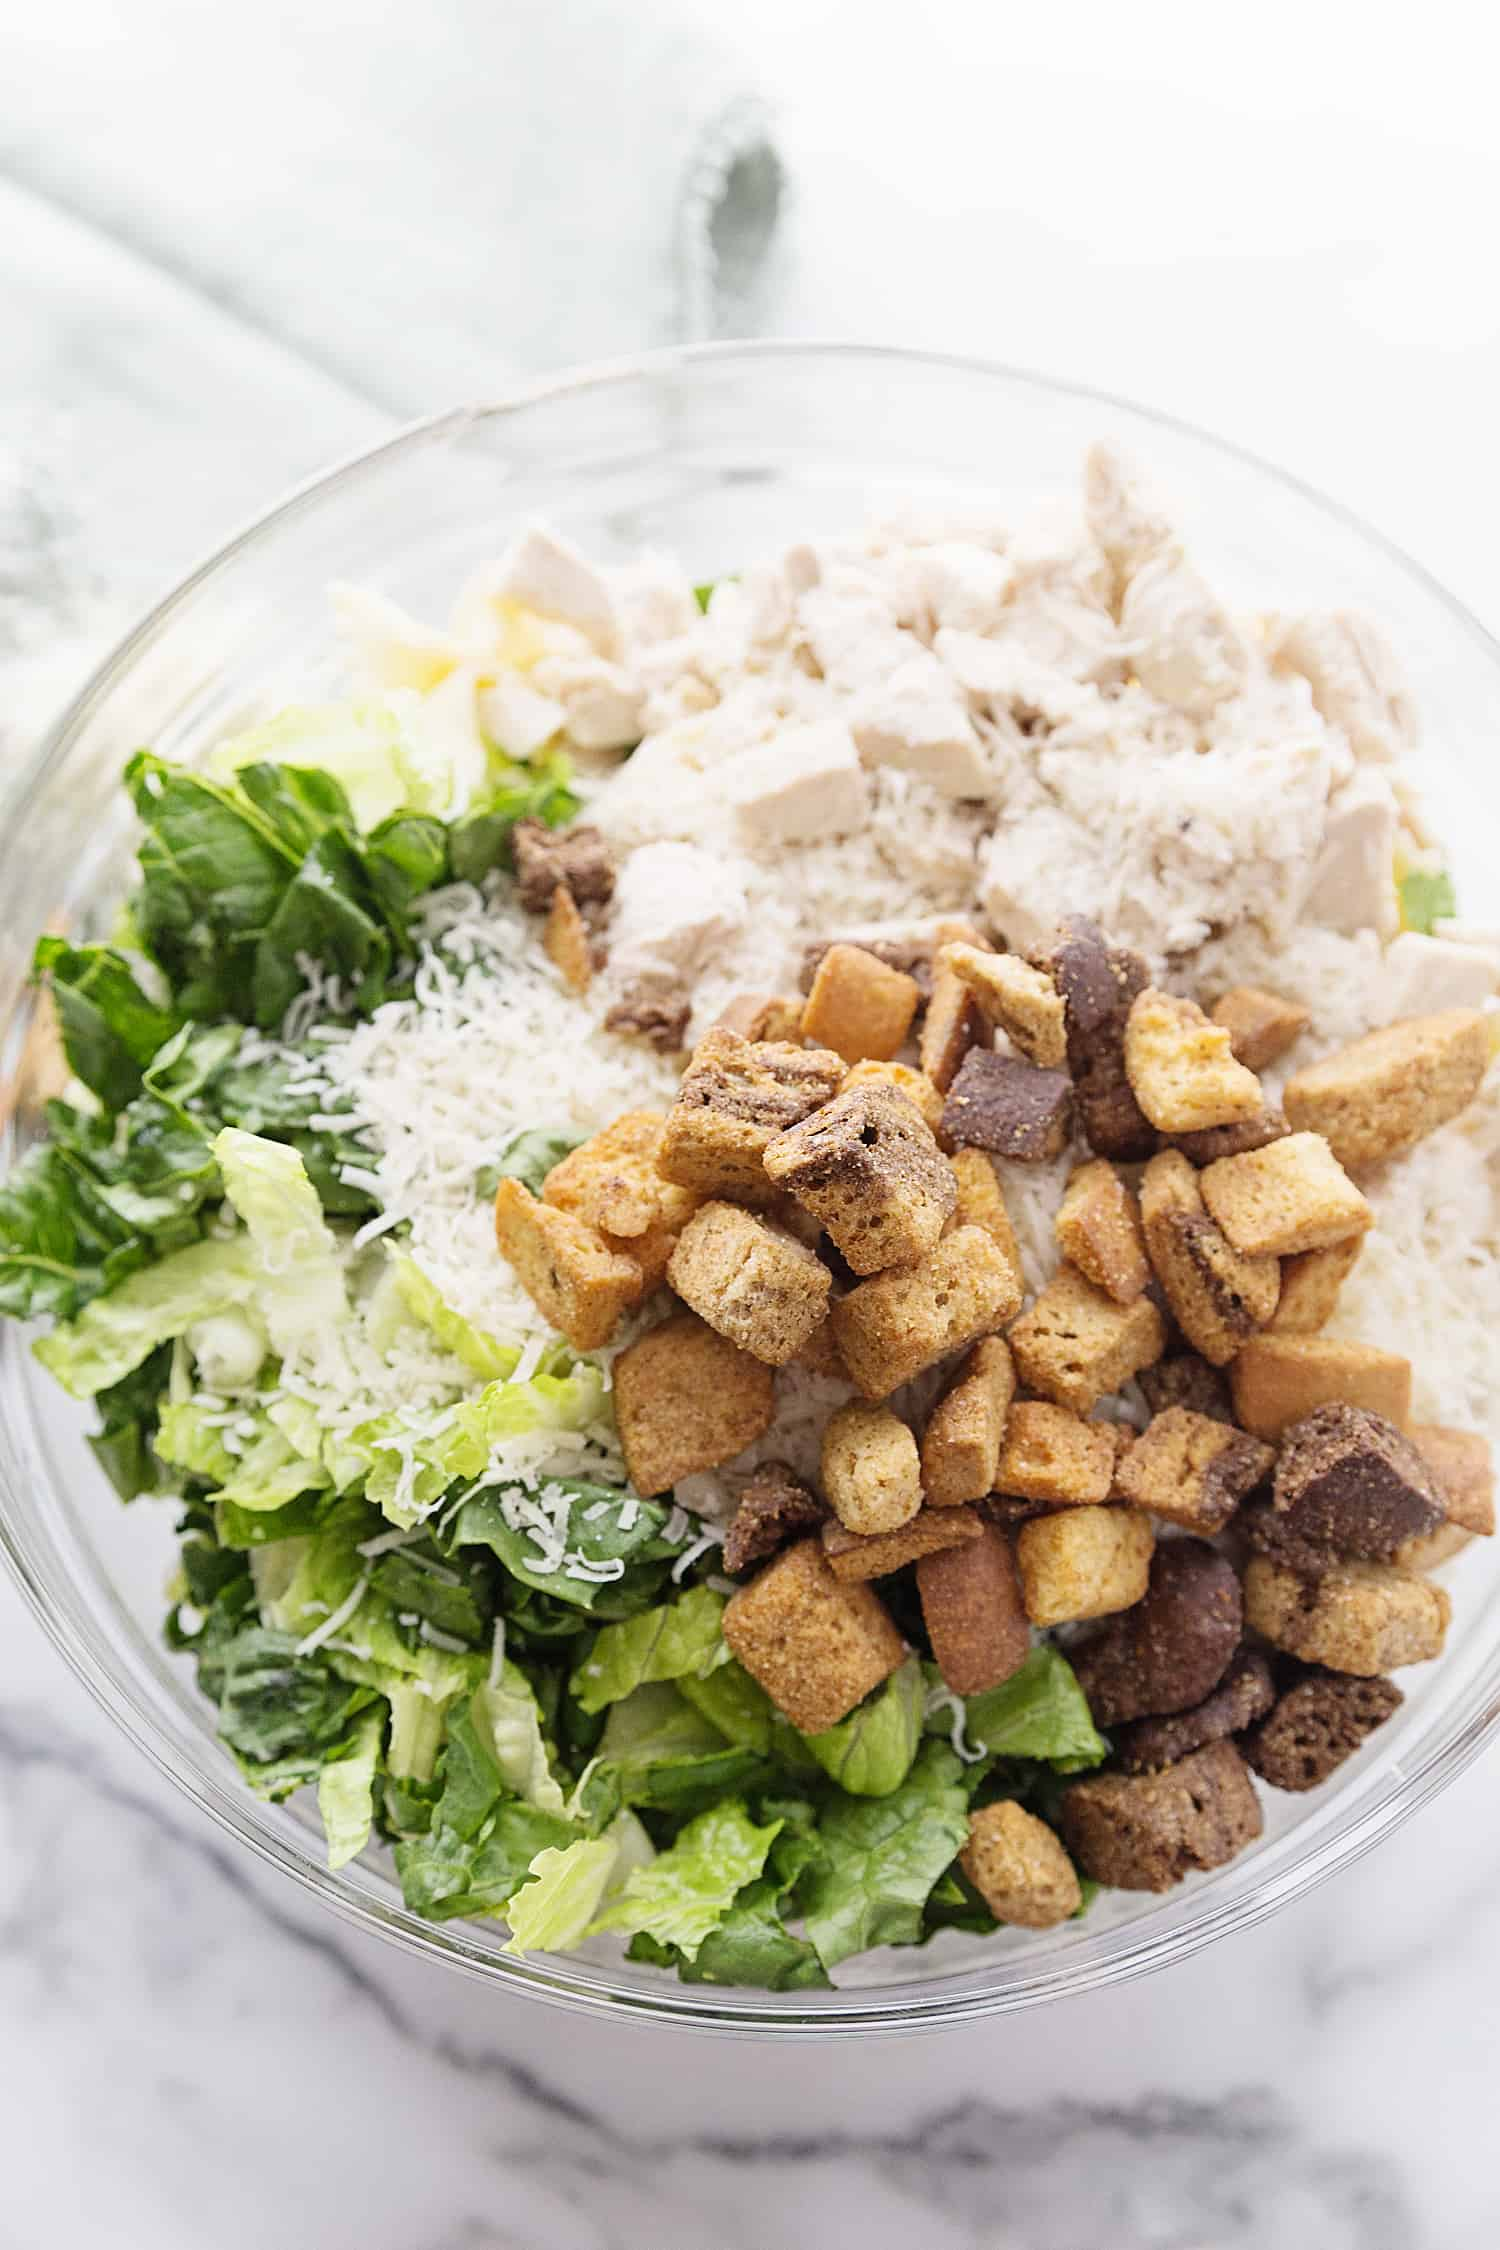 Best Bowtie Chicken Caesar Salad - There's chicken Caesar salad and there's chicken Caesar pasta salad. Once you add bowtie pasta to Caesar salad, you won't want to eat it any other way! #caesarsalad #bowtie #pastasalad #pasta #salad #halfscratched #easyrecipe #sidedish